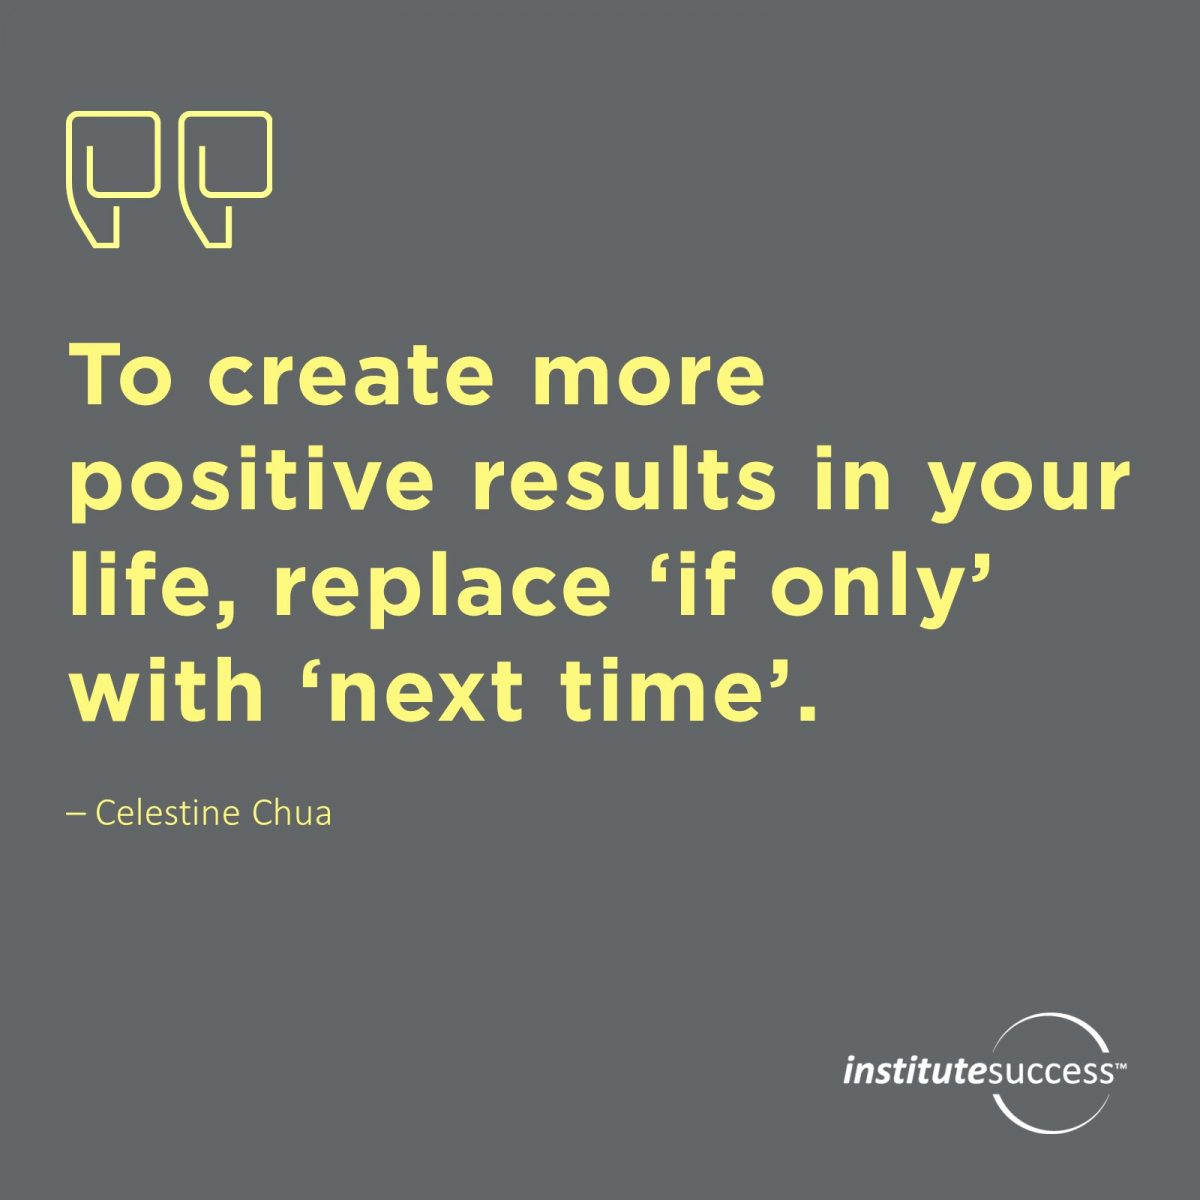 To create more positive results in your life, replace 'if only' with 'next time'. – 	Celestine Chua